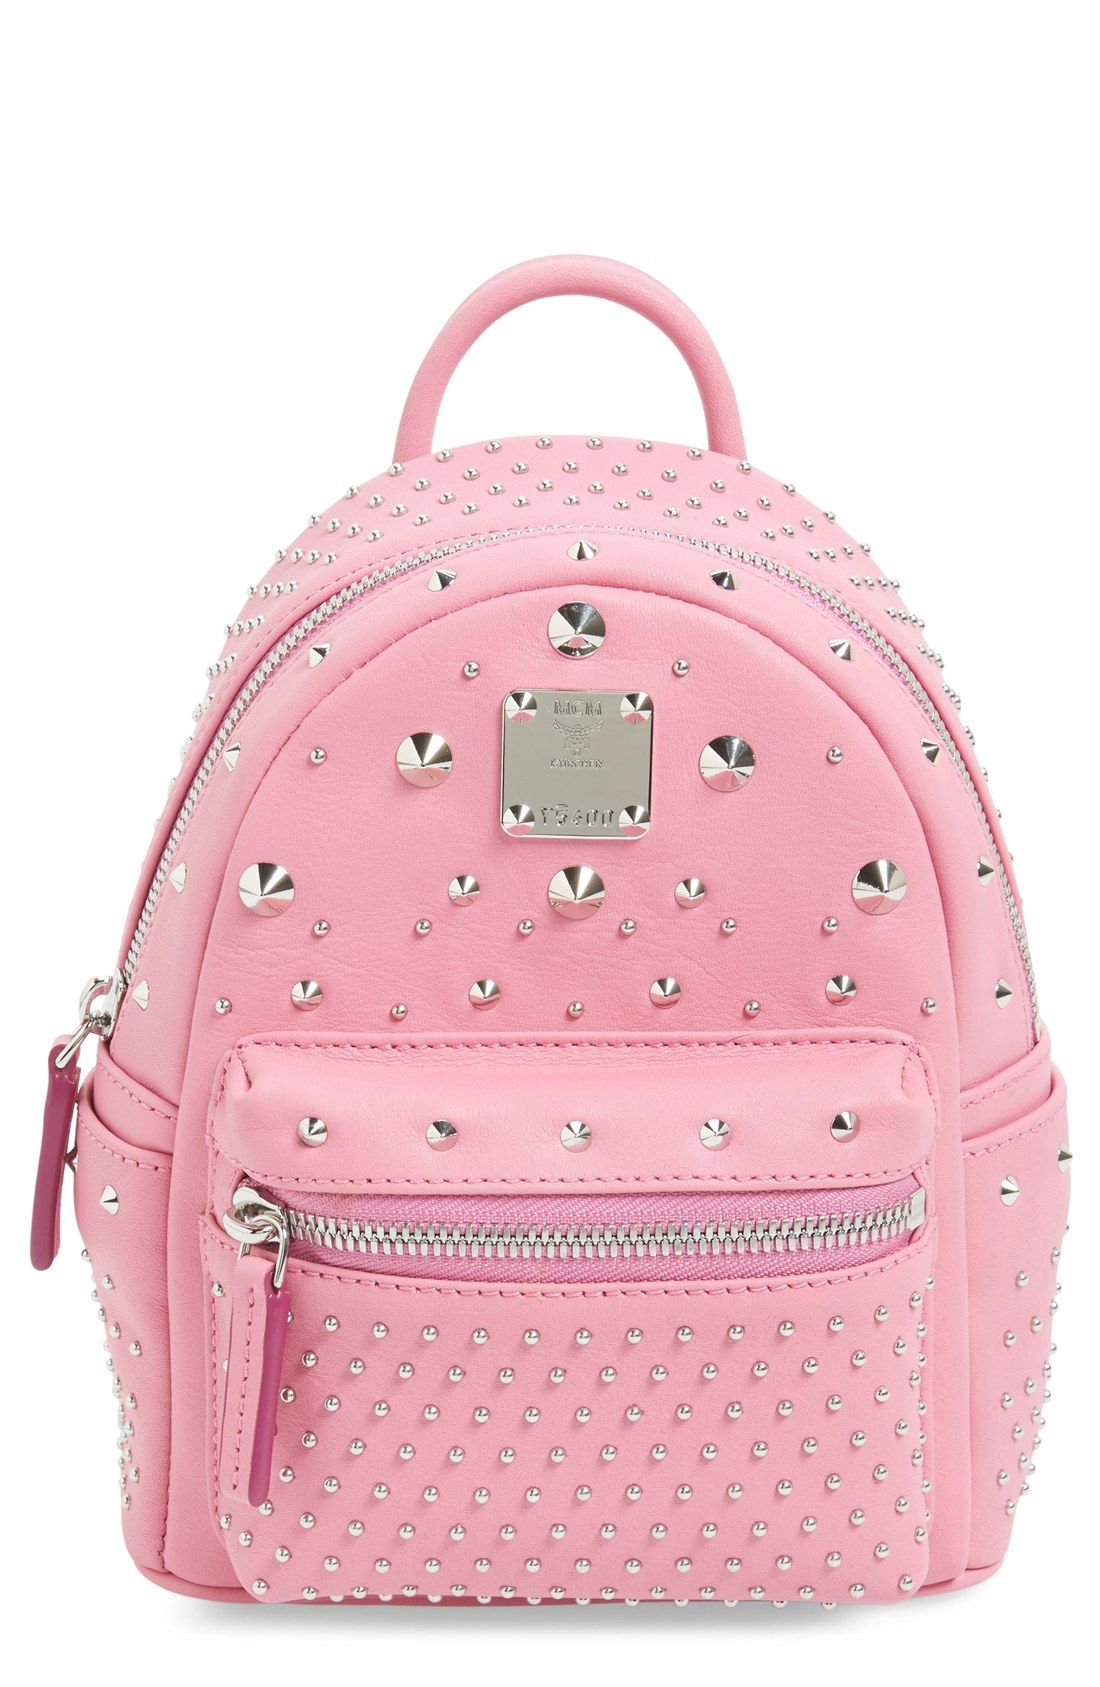 MCM 'X-Mini Stark - Bebe Boo' Studded Leather Backpack | Nordstrom